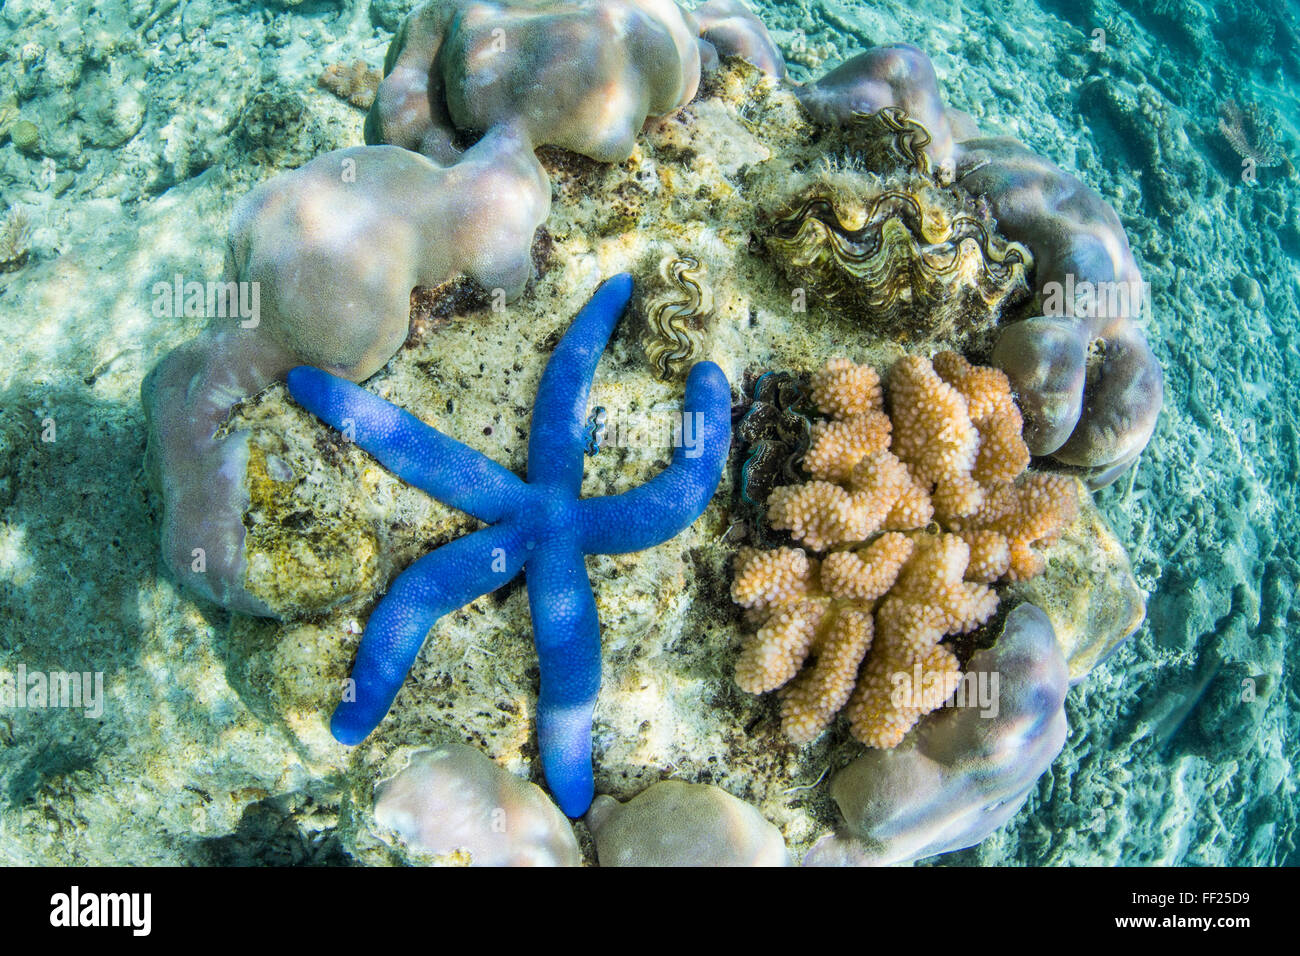 Underwater view of the reef on Pulau Lintang Island, Anambas Archipelago, Indonesia, Southeast Asia, Asia - Stock Image